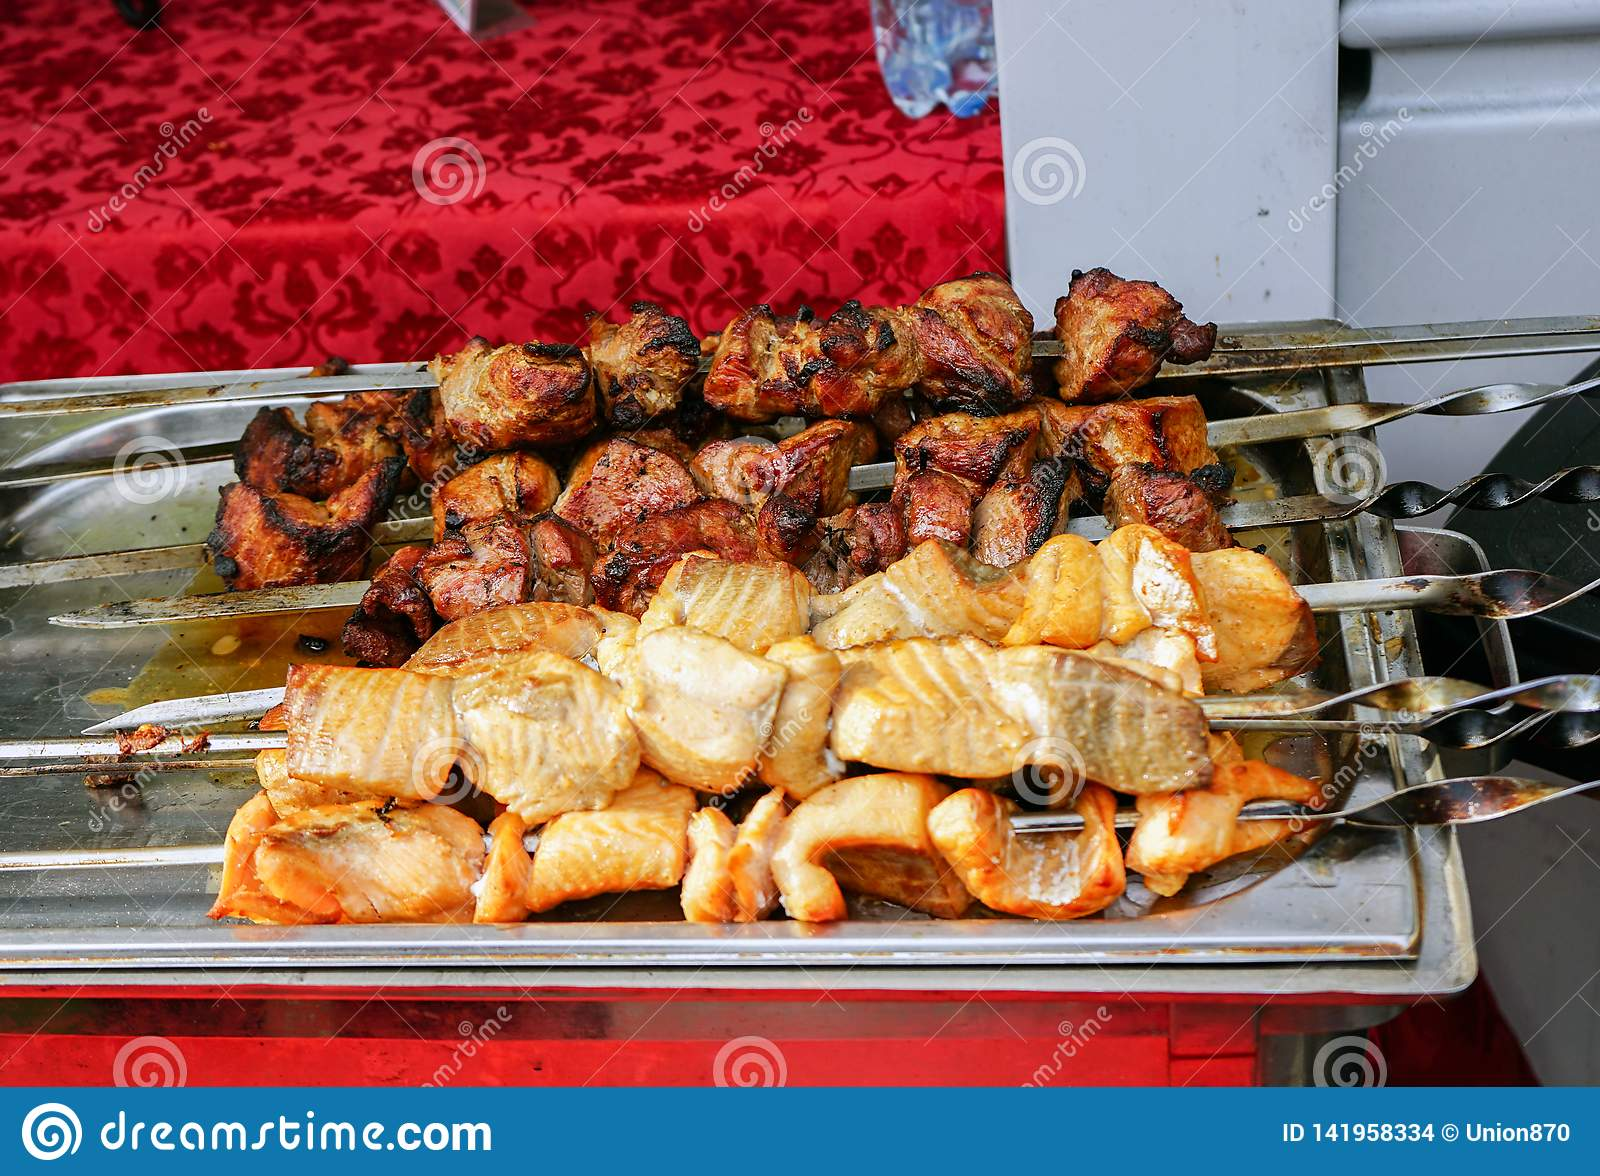 Meat cooked on the grill is on a metal tray